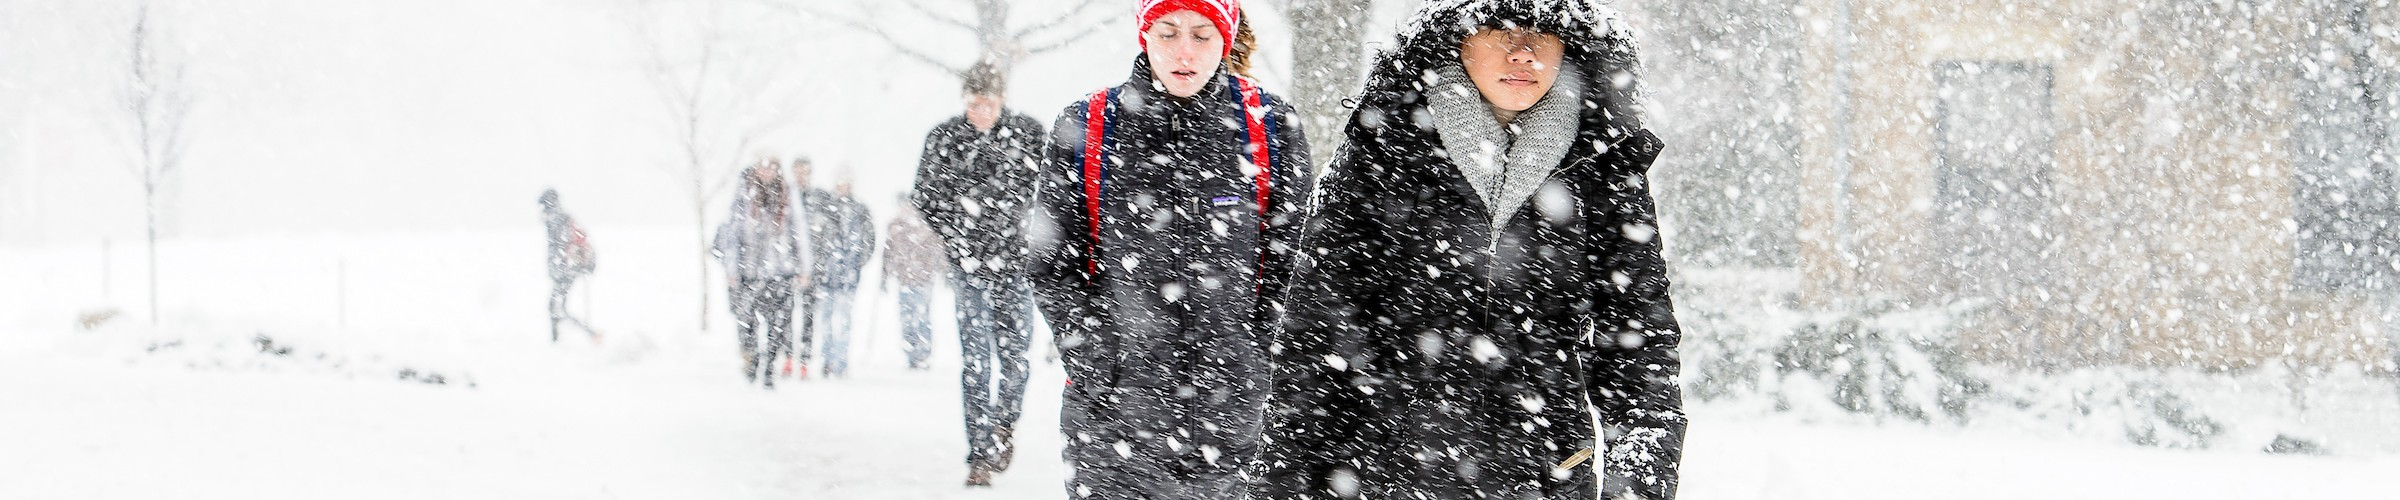 As a fresh coat of snow falls, students make their way to class up Bascom Hill at the University of Wisconsin-Madison during winter on Jan. 25, 2017. (Photo by Bryce Richter / UW-Madison)